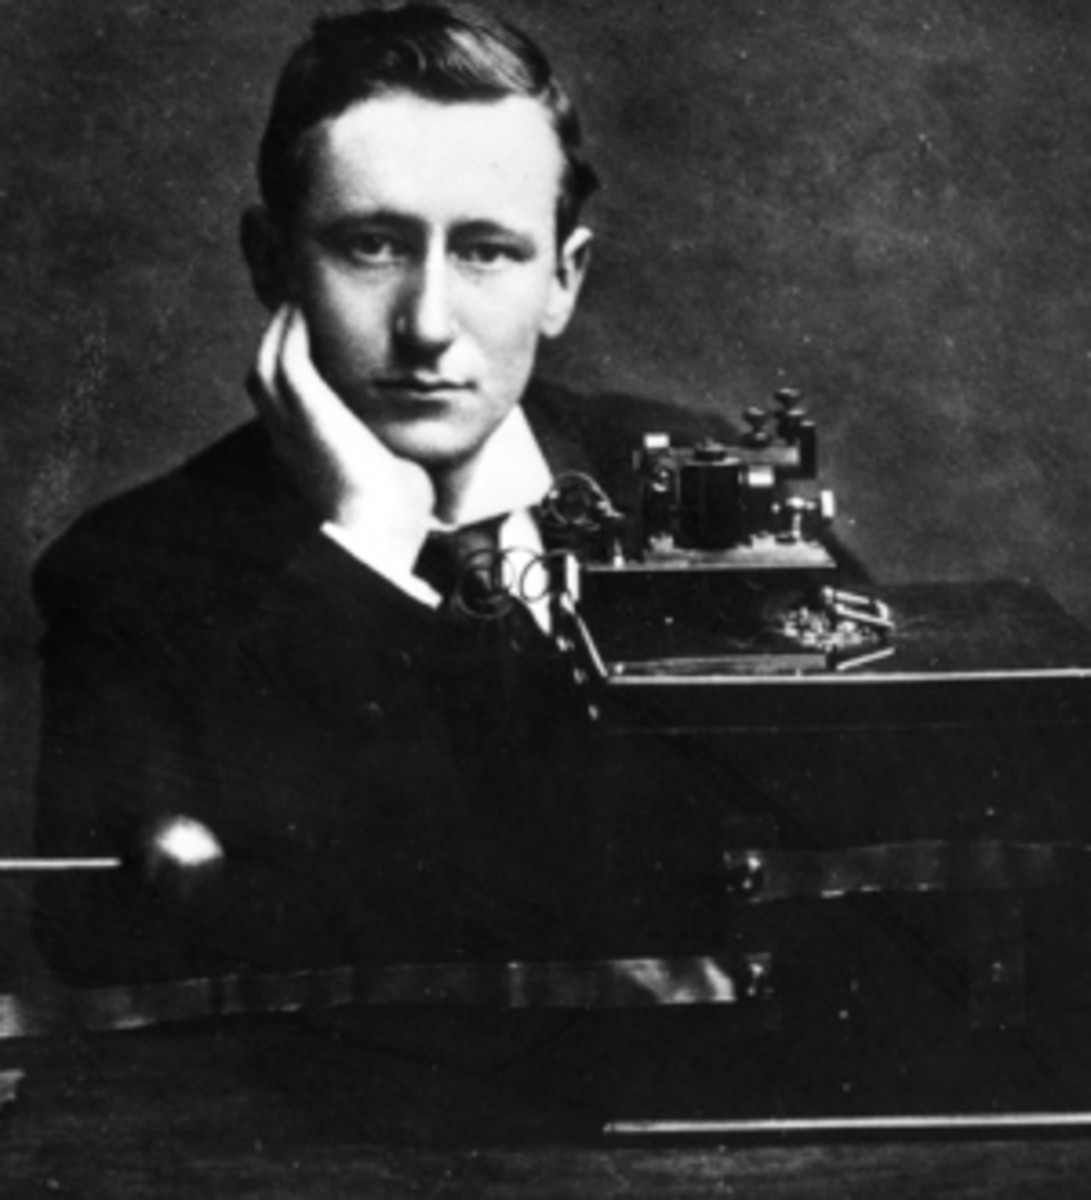 Guglielmo Marconi with his wireless telegraphy device.